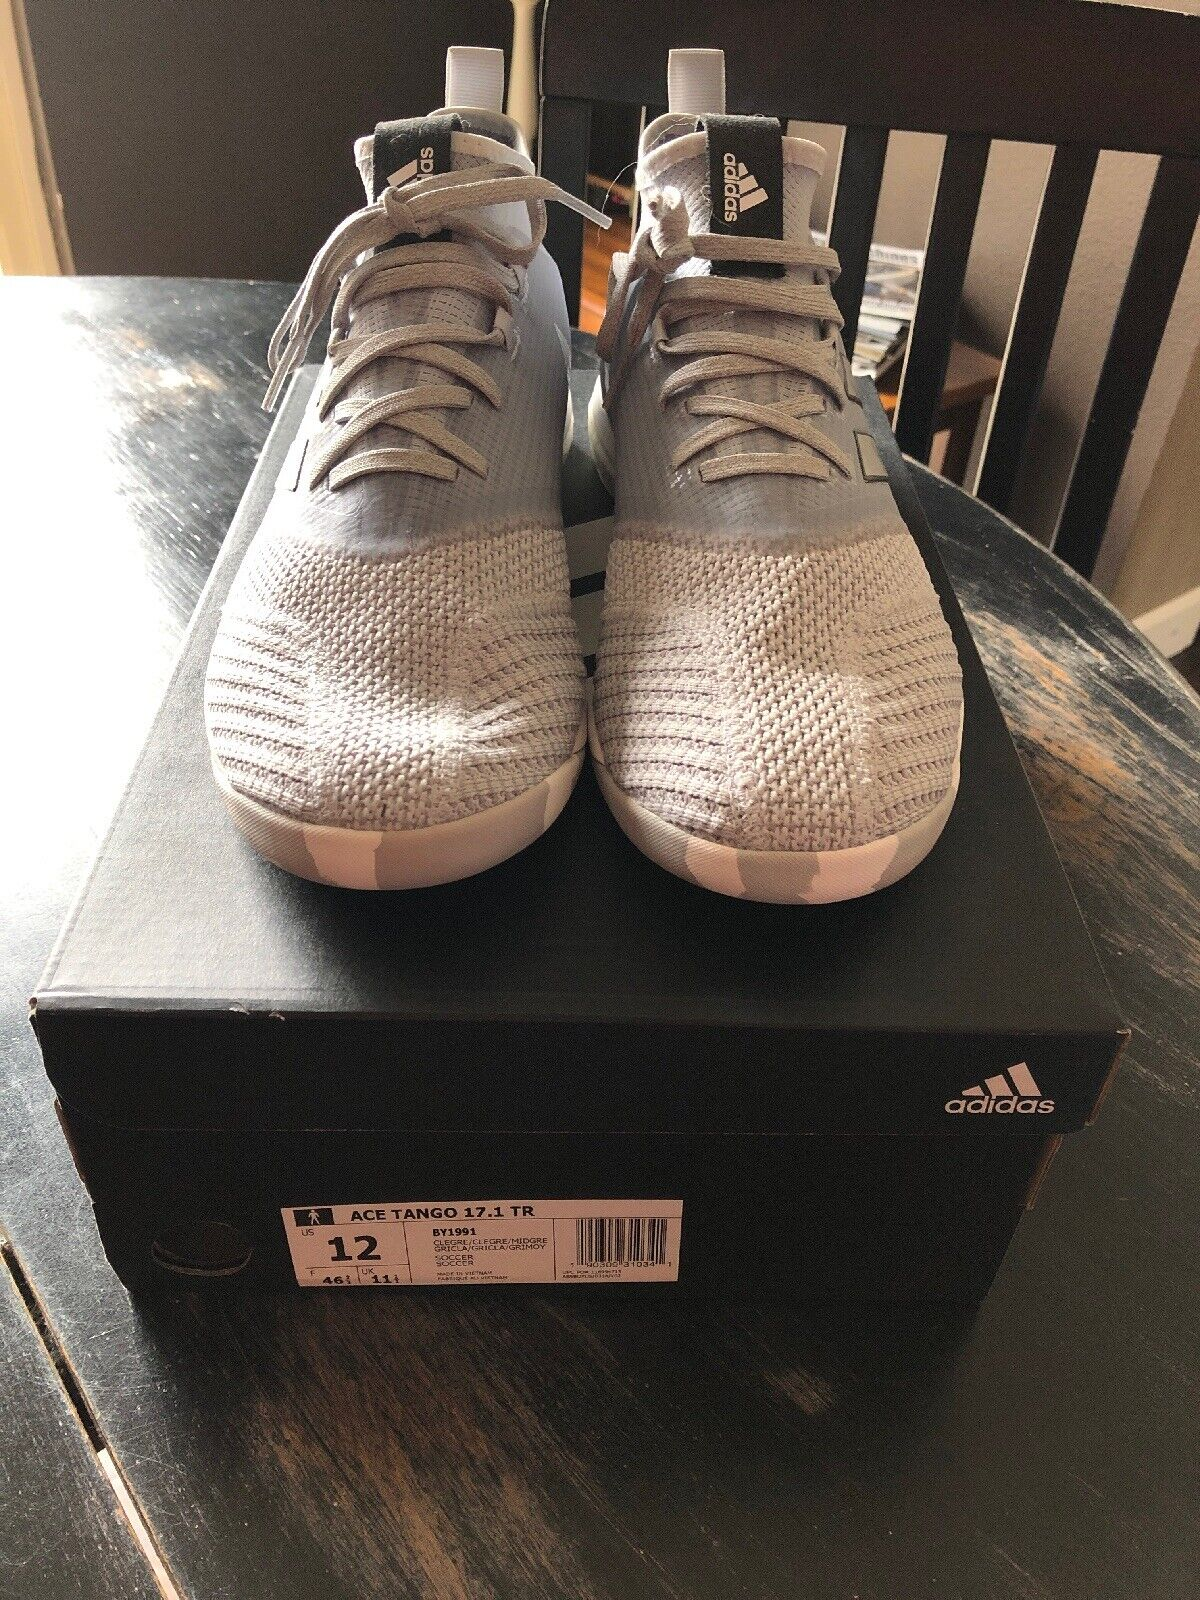 Adidas Ace Tango 17.1 TR Indoor Soccer W  BOOST Size 12 US New w  Box